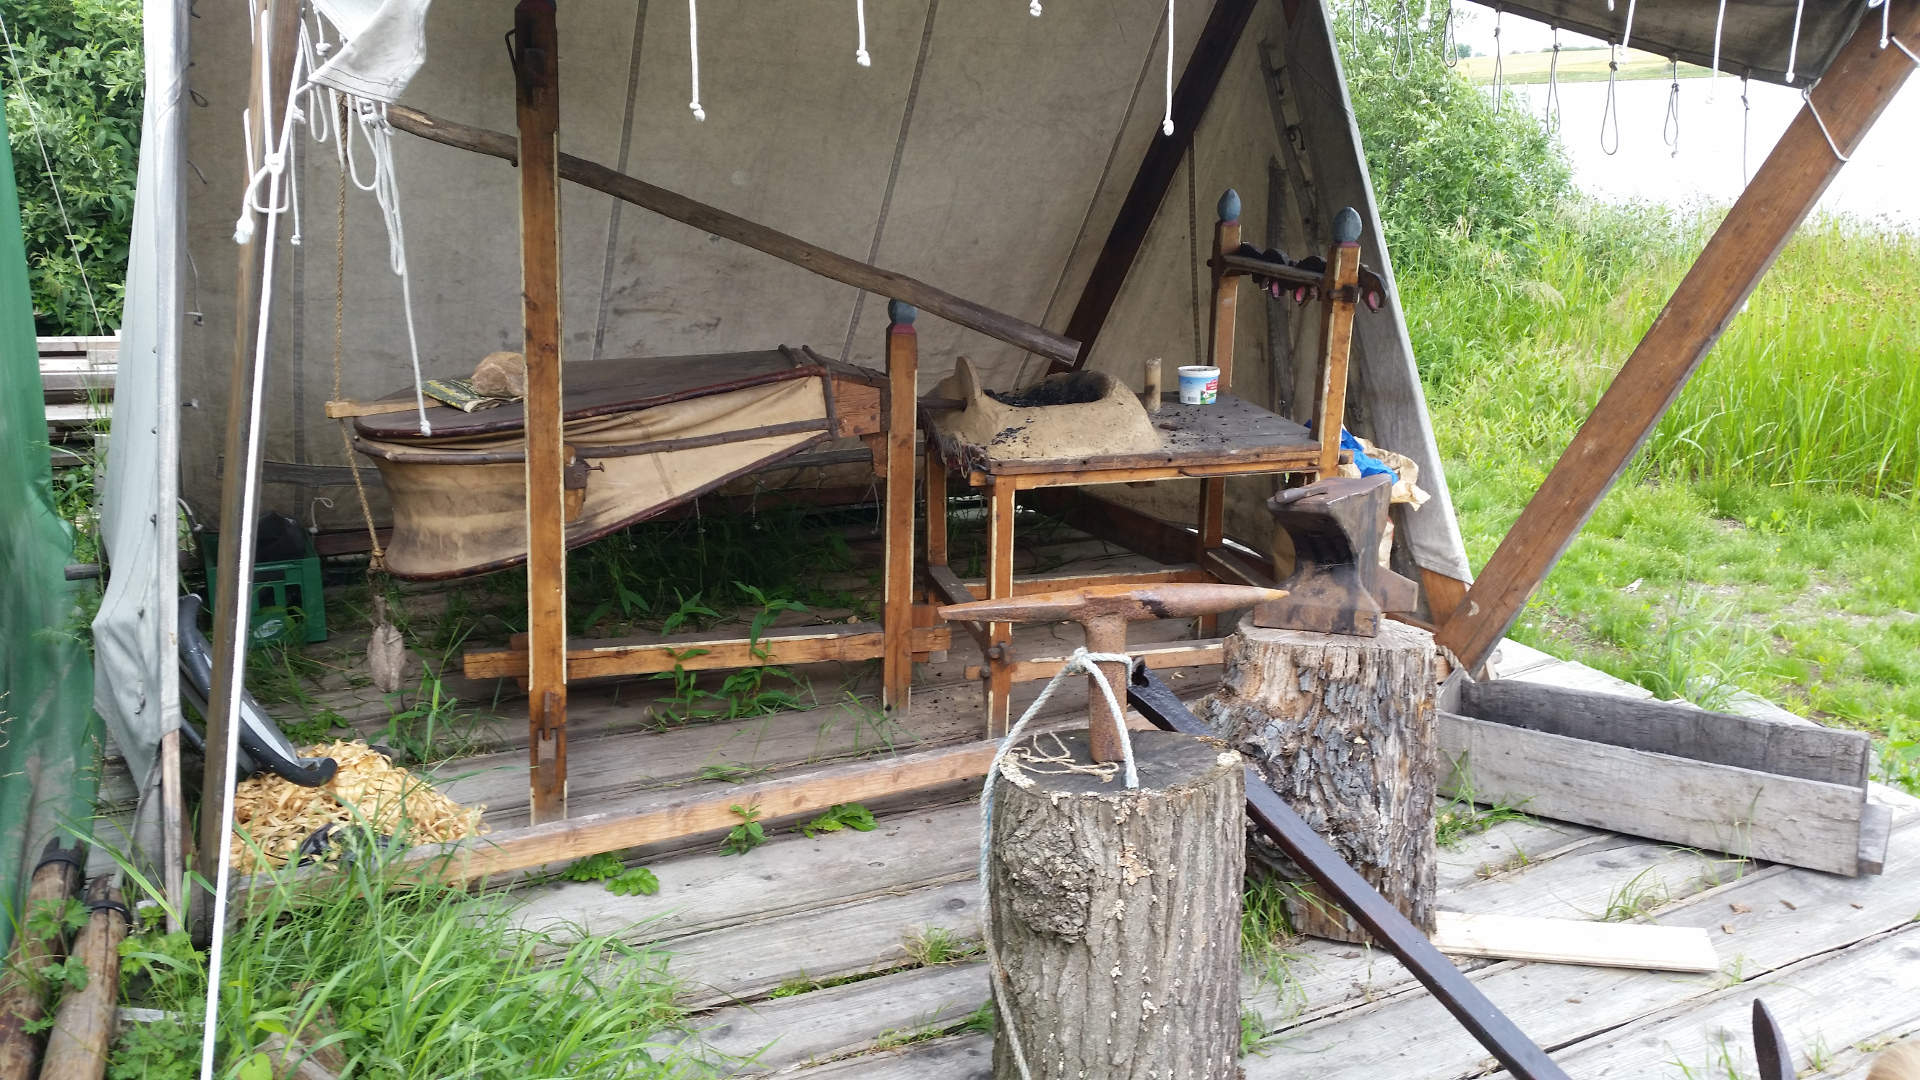 Blacksmith replica in Landby Viking museum